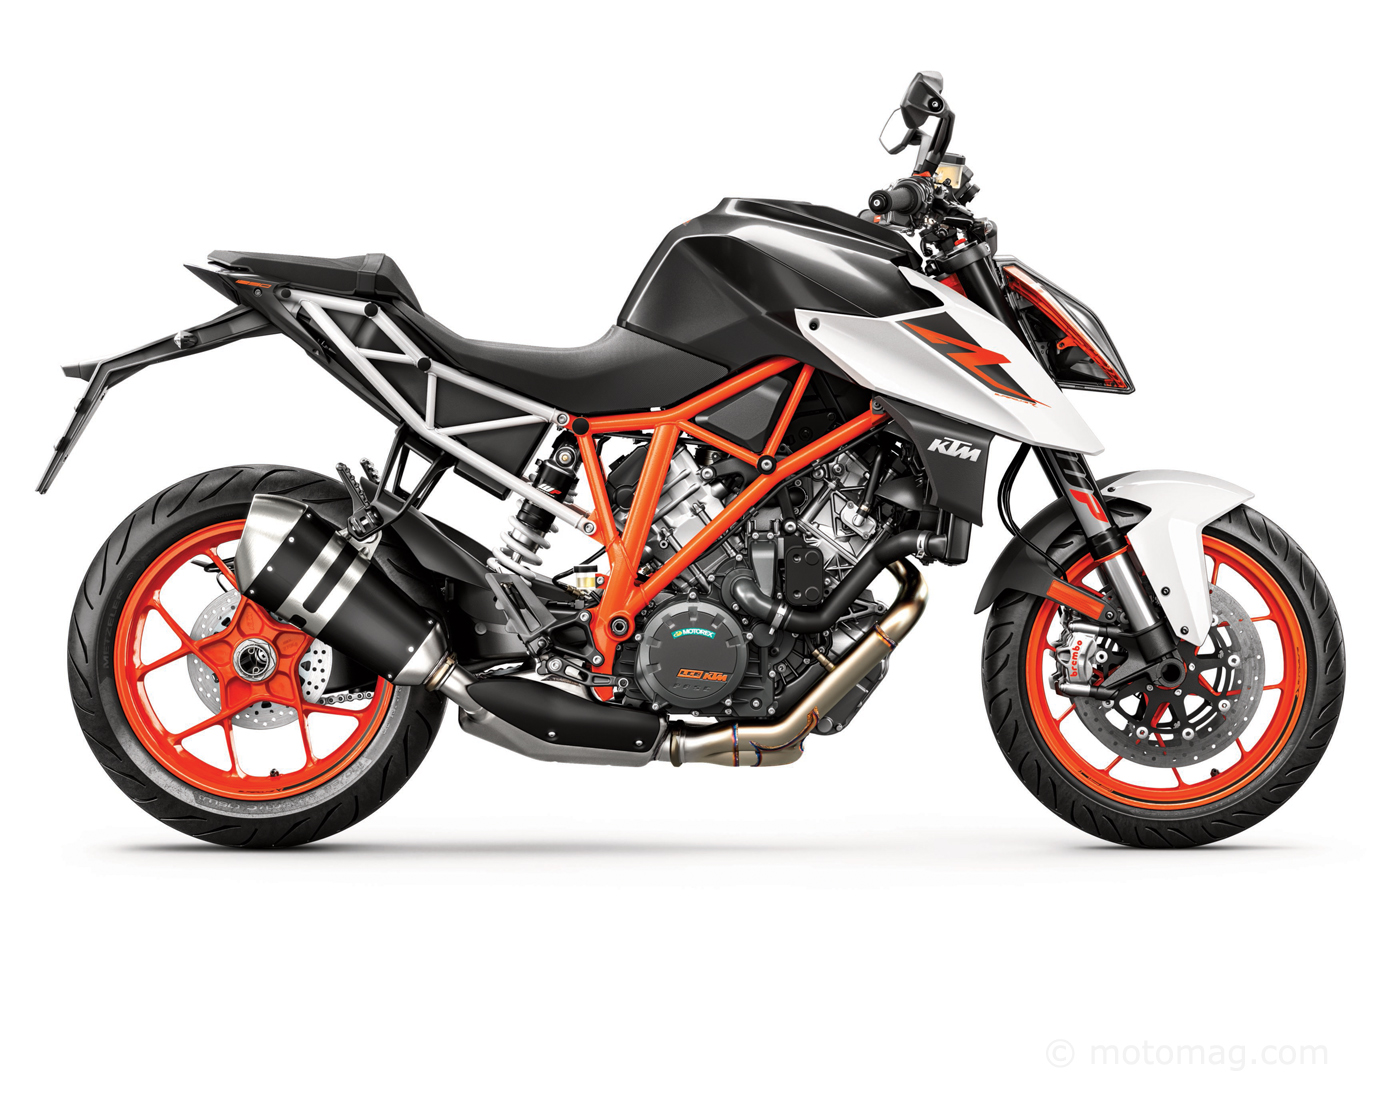 ktm 1290 super duke r 2017 mont e en gamme moto magazine leader de l actualit de la moto. Black Bedroom Furniture Sets. Home Design Ideas